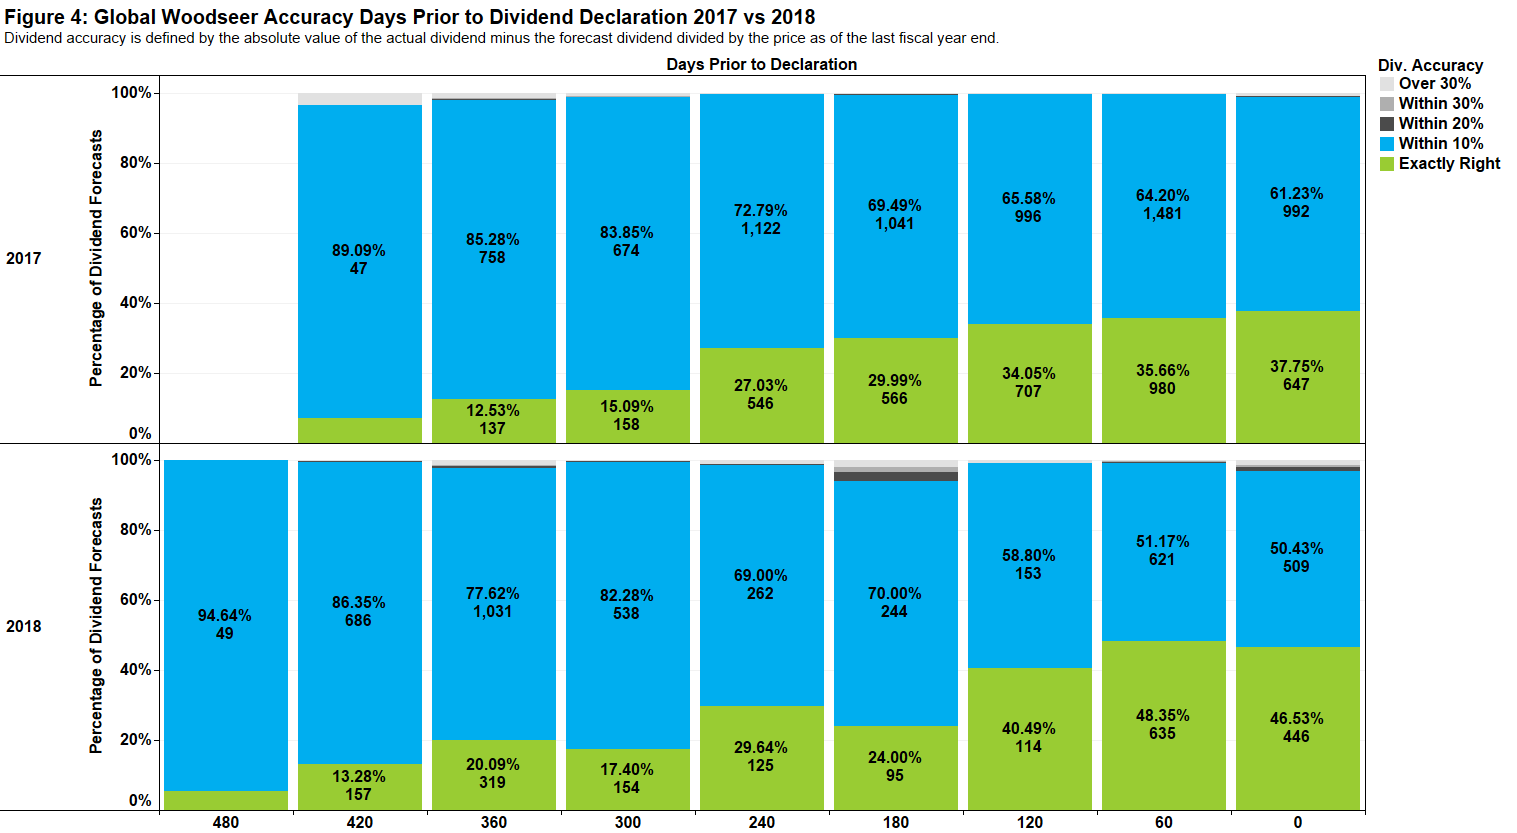 Figure 4, Global WoodSeer Accuracy Days Prior to Dividend Declaration